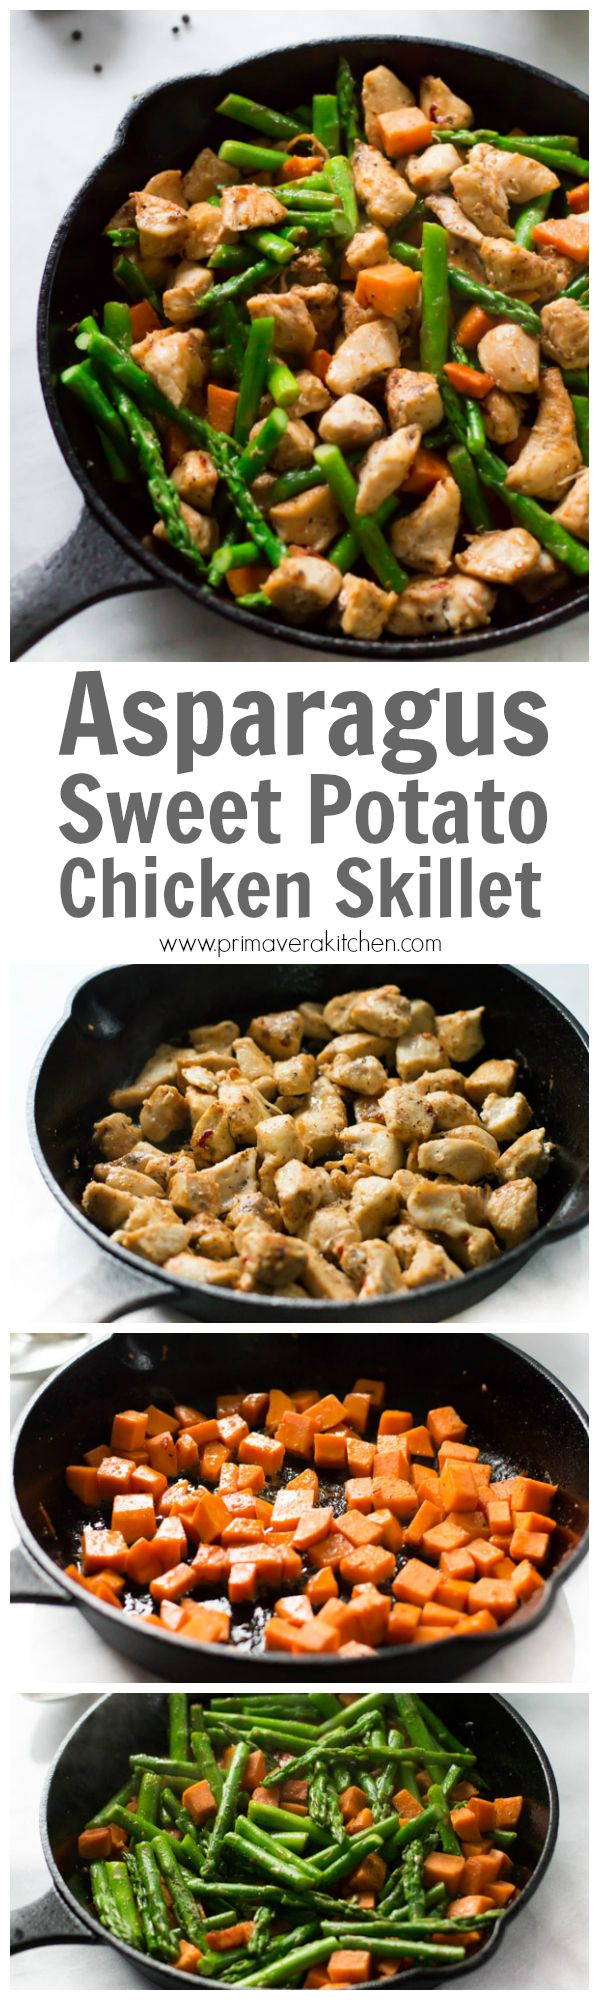 587 best healthy meal plan ideas images on pinterest healthy asparagus sweet potato chicken skillet forumfinder Gallery